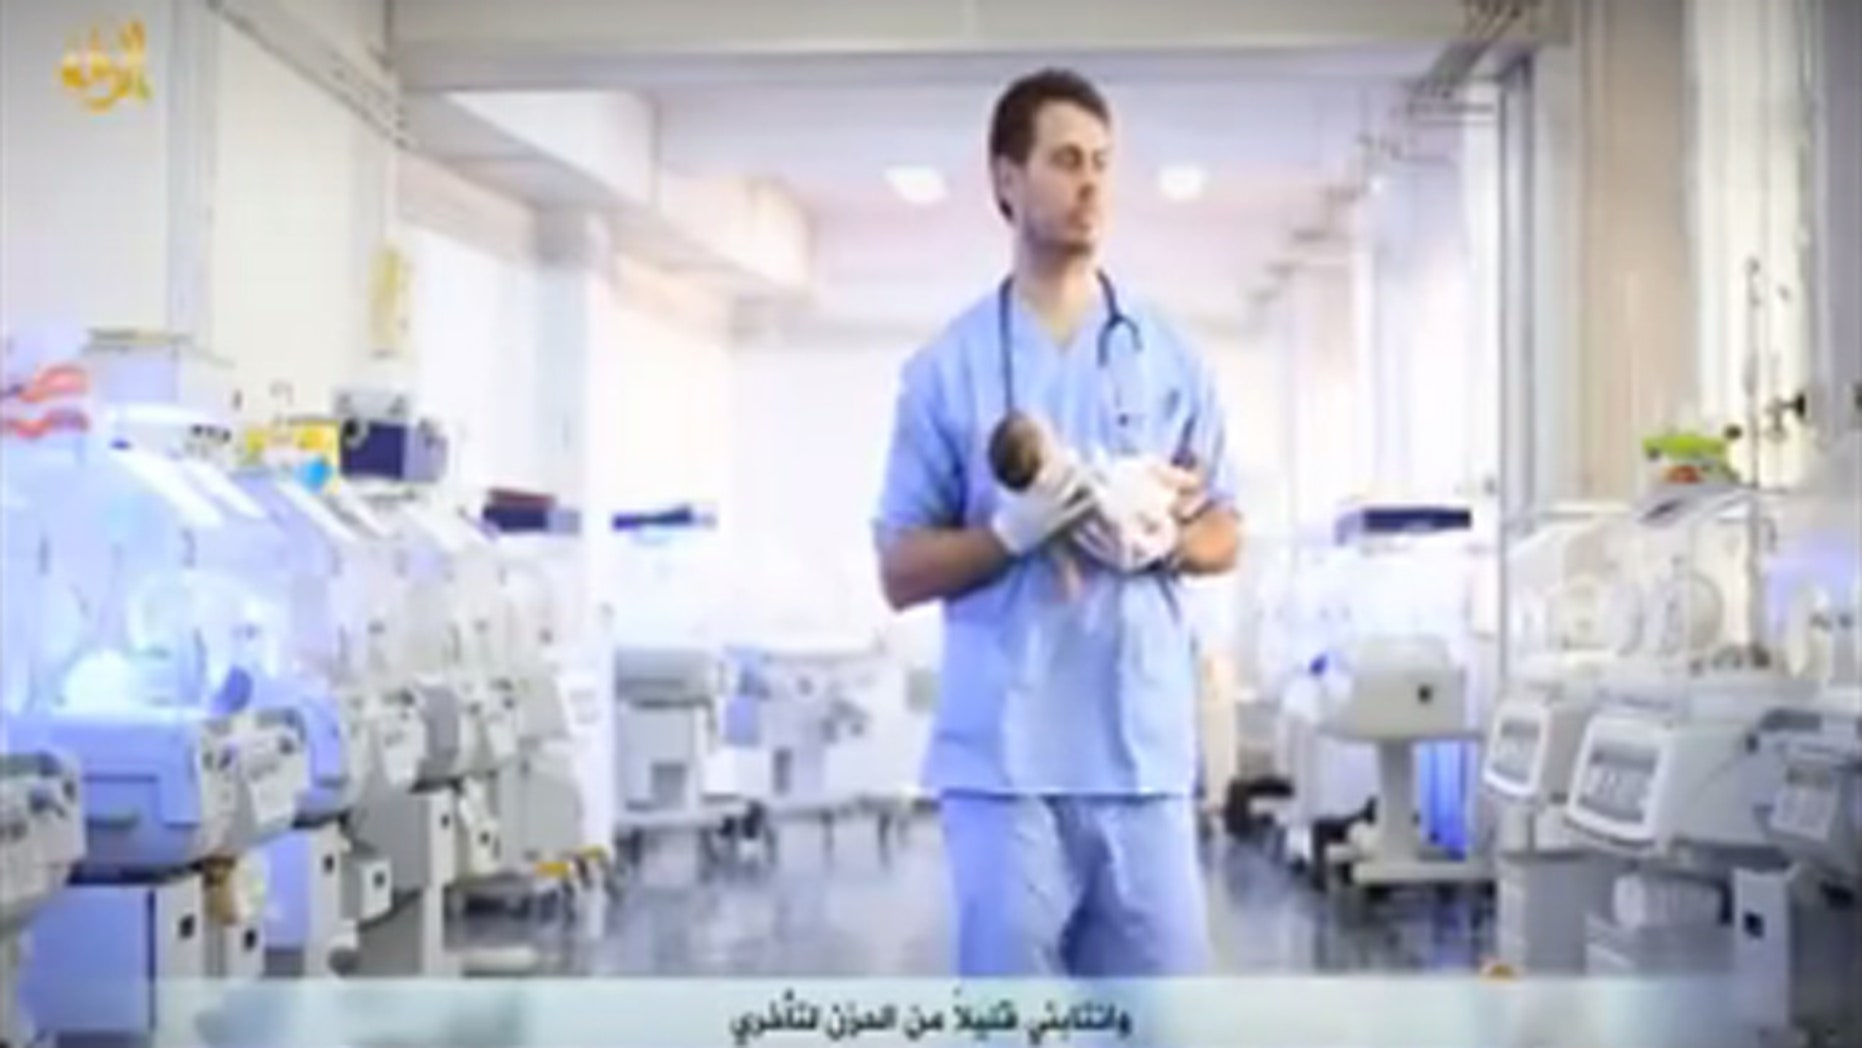 In a recent ISIS propaganda video, Australian Dr. Tareq Kamleh was shown working inside a purported ISIS maternity ward in Syria, and urging other medical professionals to join him. (Screengrab)